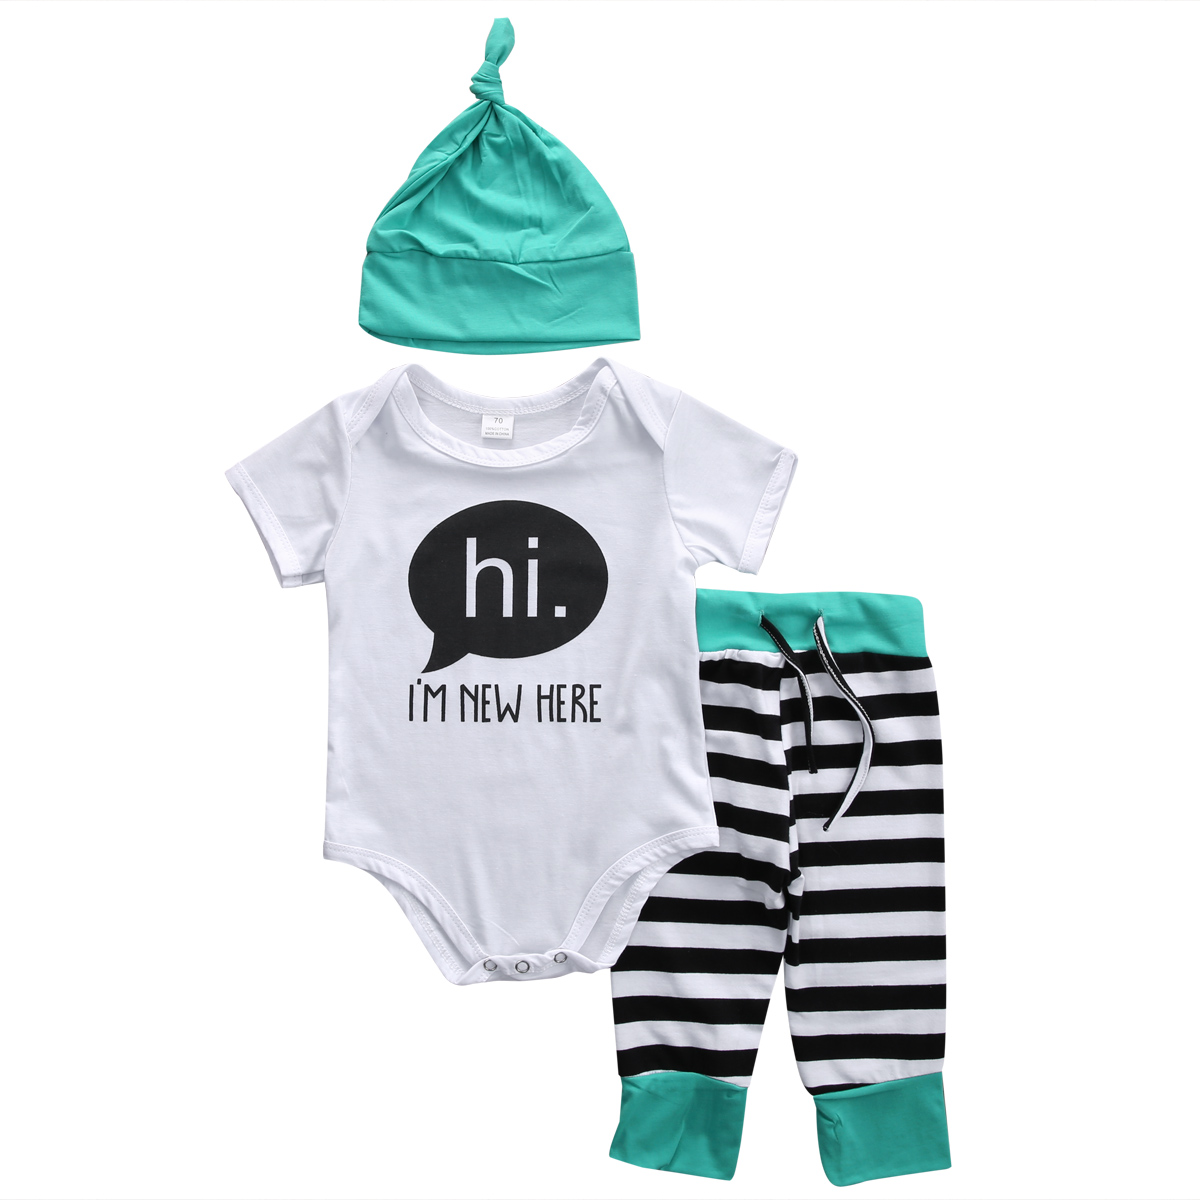 2019 Autumn Winter Cute Newborn Baby Girls Clothes Cotton Tops Short Sleeve Romper Jumpsuit Striped Leggings Pants Hat Outfits Set From